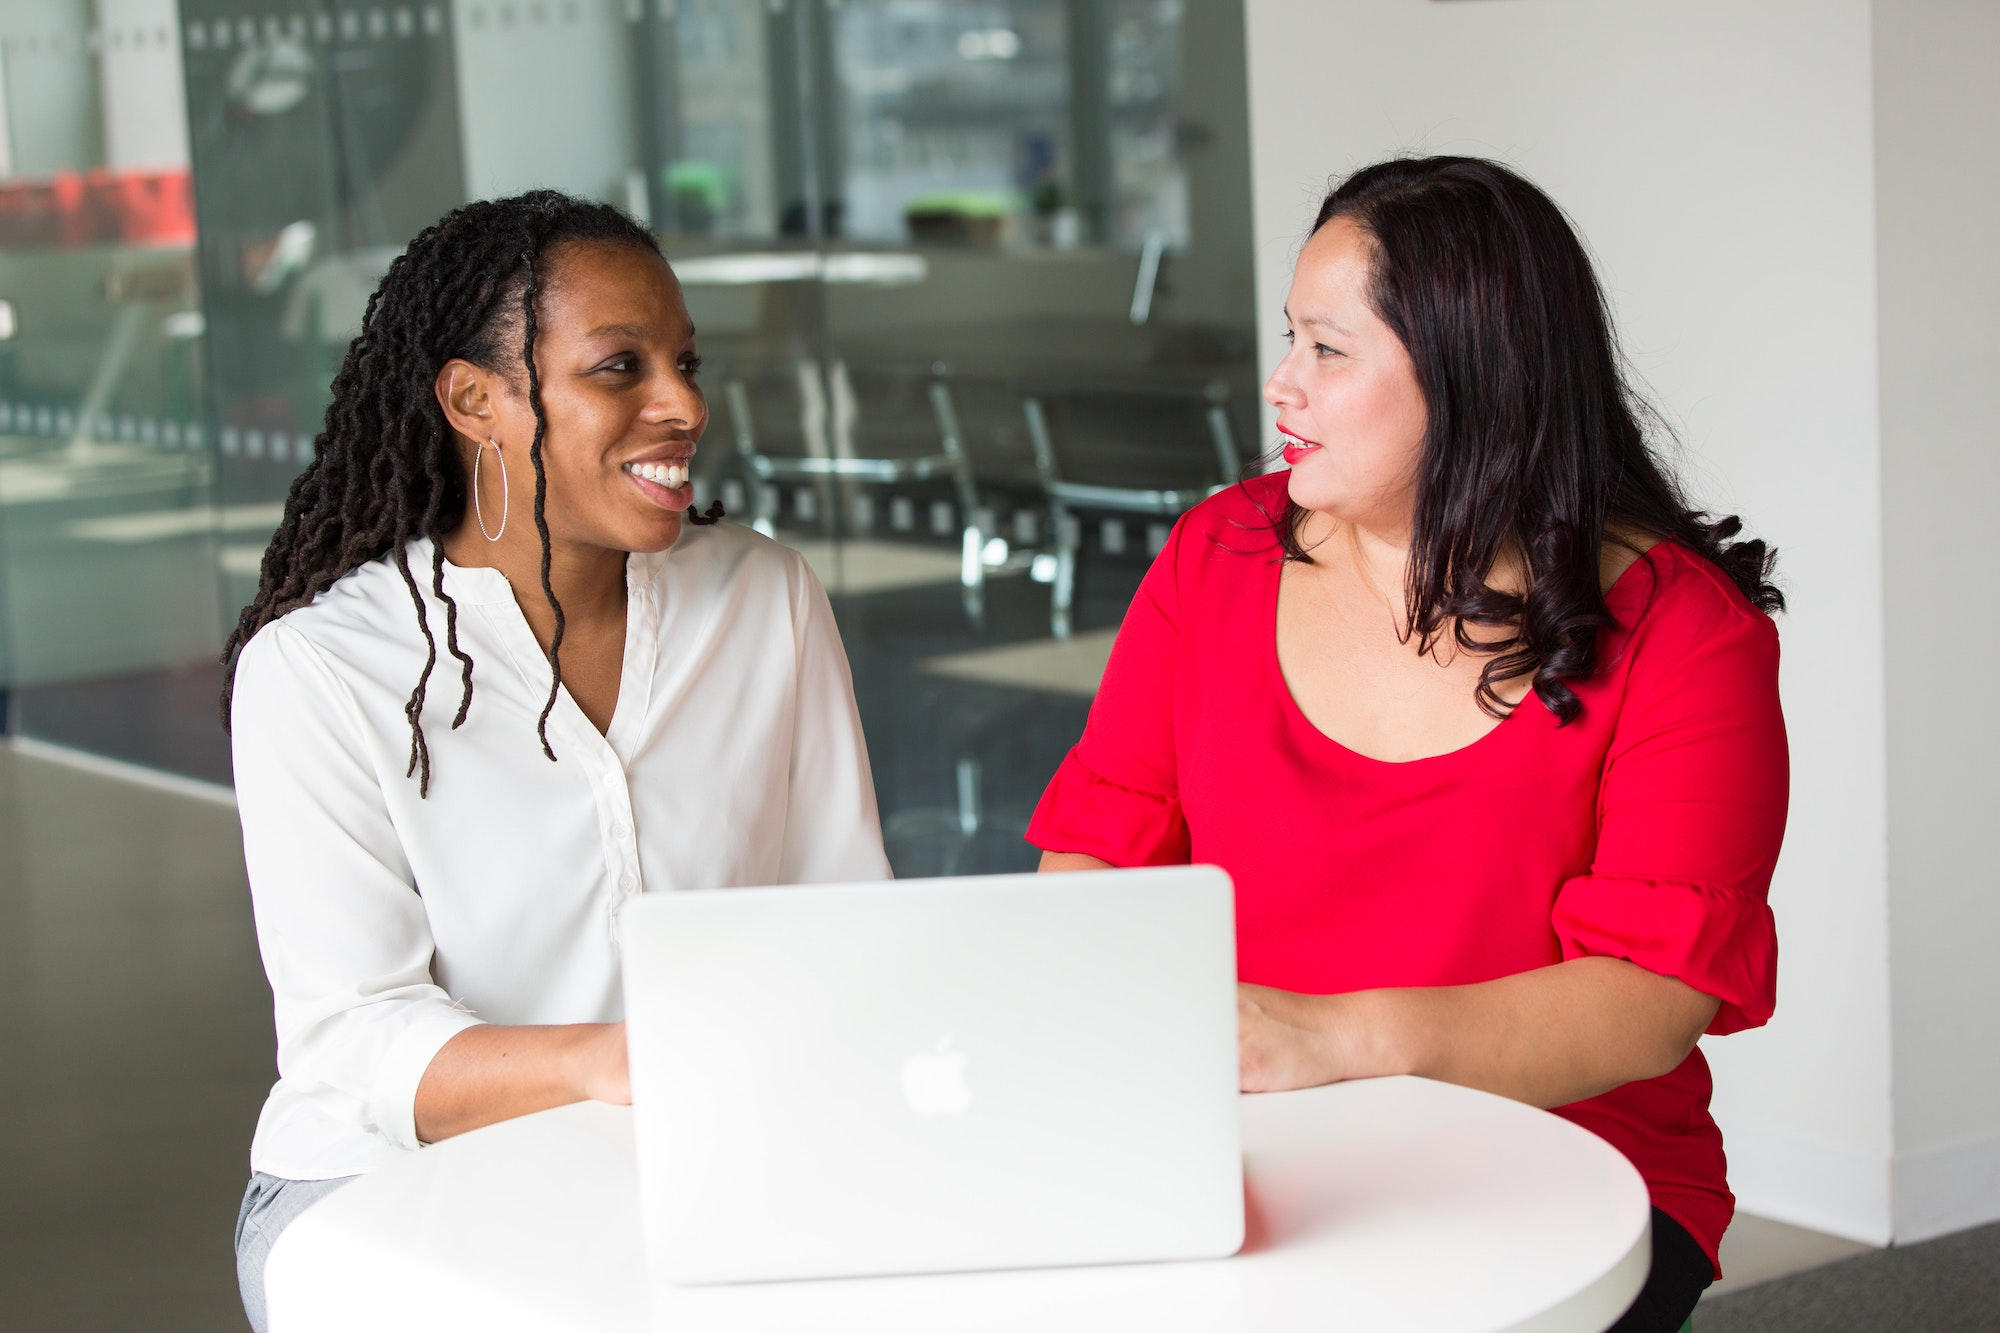 Black woman in a white button down shirt smiling and talking to an Asian woman in a red dress in an office setting